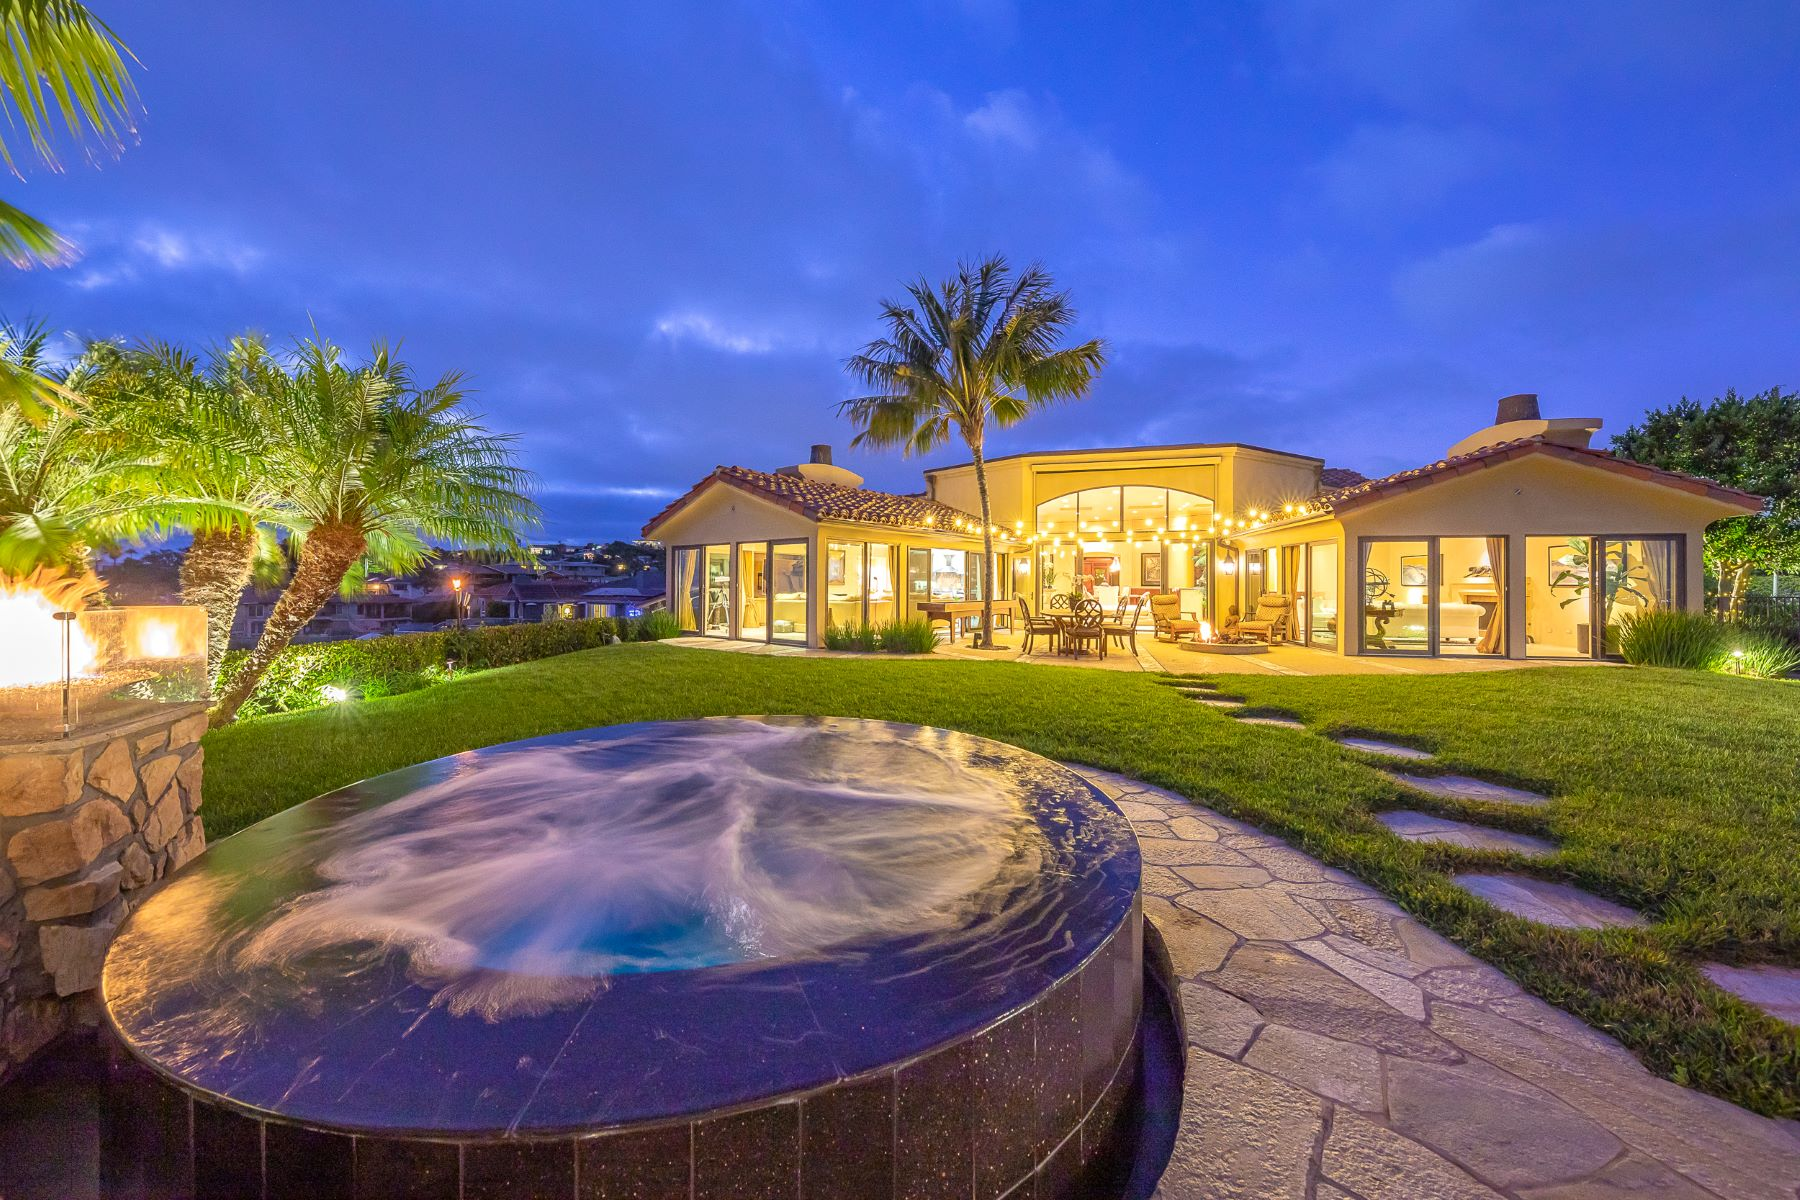 Single Family Homes for Sale at 1485 Deer Hill Ct La Jolla, California 92037 United States